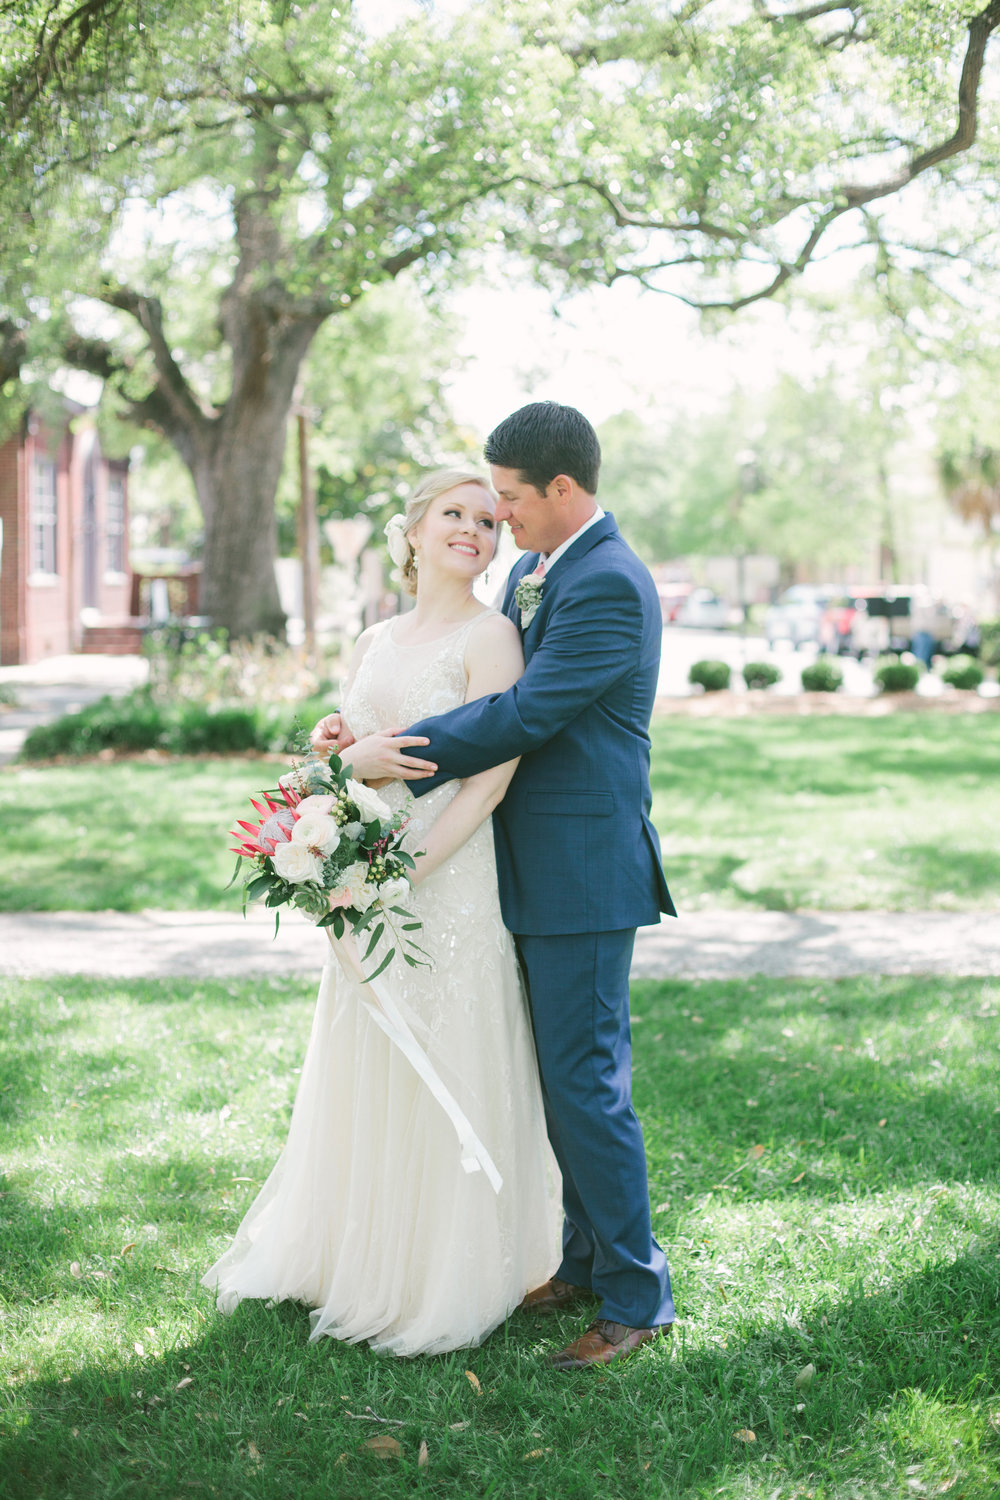 allison-blake-ivory-and-beau-bridal-boutique-savannah-wedding-planner-savannah-florist-jenna-davis-photography-cha-bella-wedding-warren-square-wedding-savannah-square-wedding-savannah-bridal-savannah-weddings-gettin-ready-22.jpg